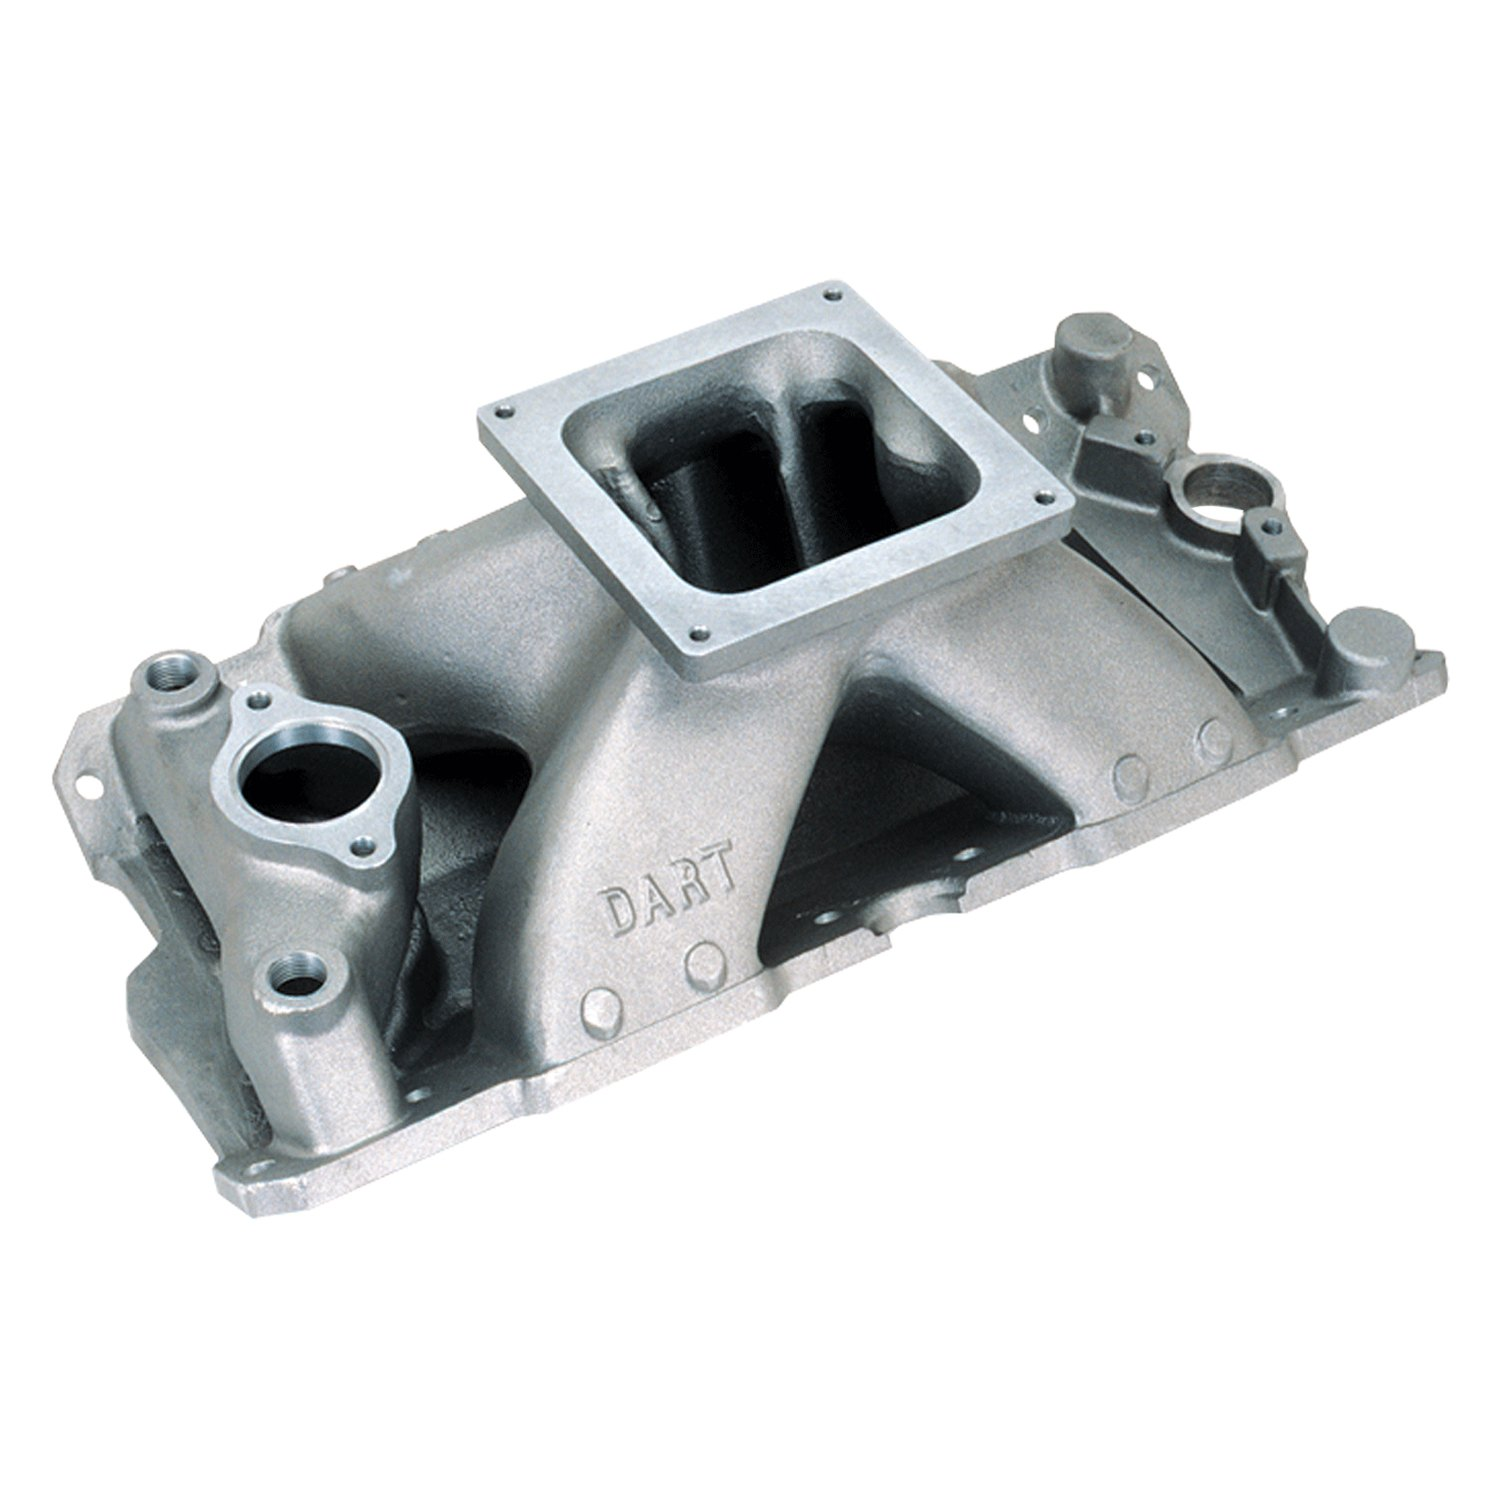 chevrolet camaro price list with Dart Race Series Single Plane Intake Manifold 475940002 on Gen 5 Camaro 2010 2014 LS LT KN Performance FIPK Air Intake System p 14577 likewise Hyundai Creta Lancamento E Preco No Brasil further 15967 1966 Madeira Maroon Chevelle 396365hp 4 Speed Loaded With Options together with Salman Khan Cars Bikes Collection additionally 124  Fast and Furious 69 Chevy Camaro Yenko Model Kit Product 10797.